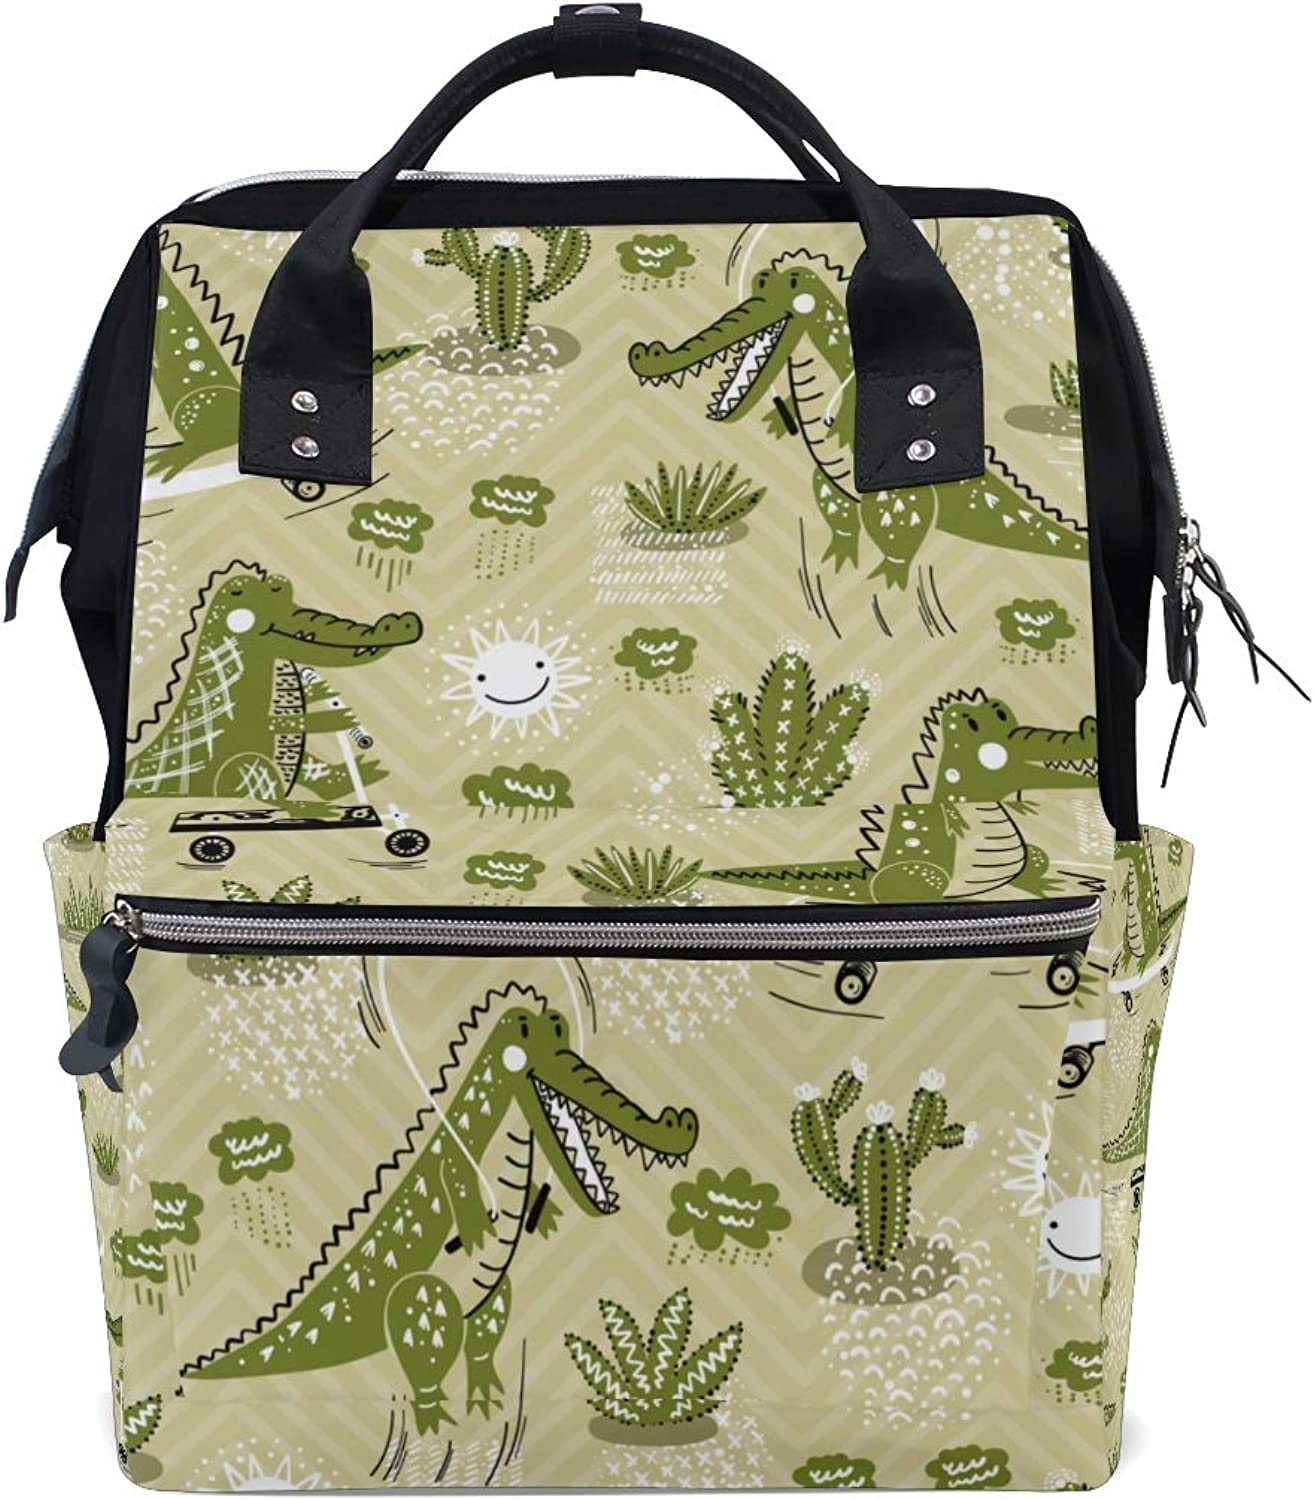 ColourLife Diaper bag Backpack Cute Crocodile Pattern Casual Daypack Multifunctional Nappy Bags for Women Girls